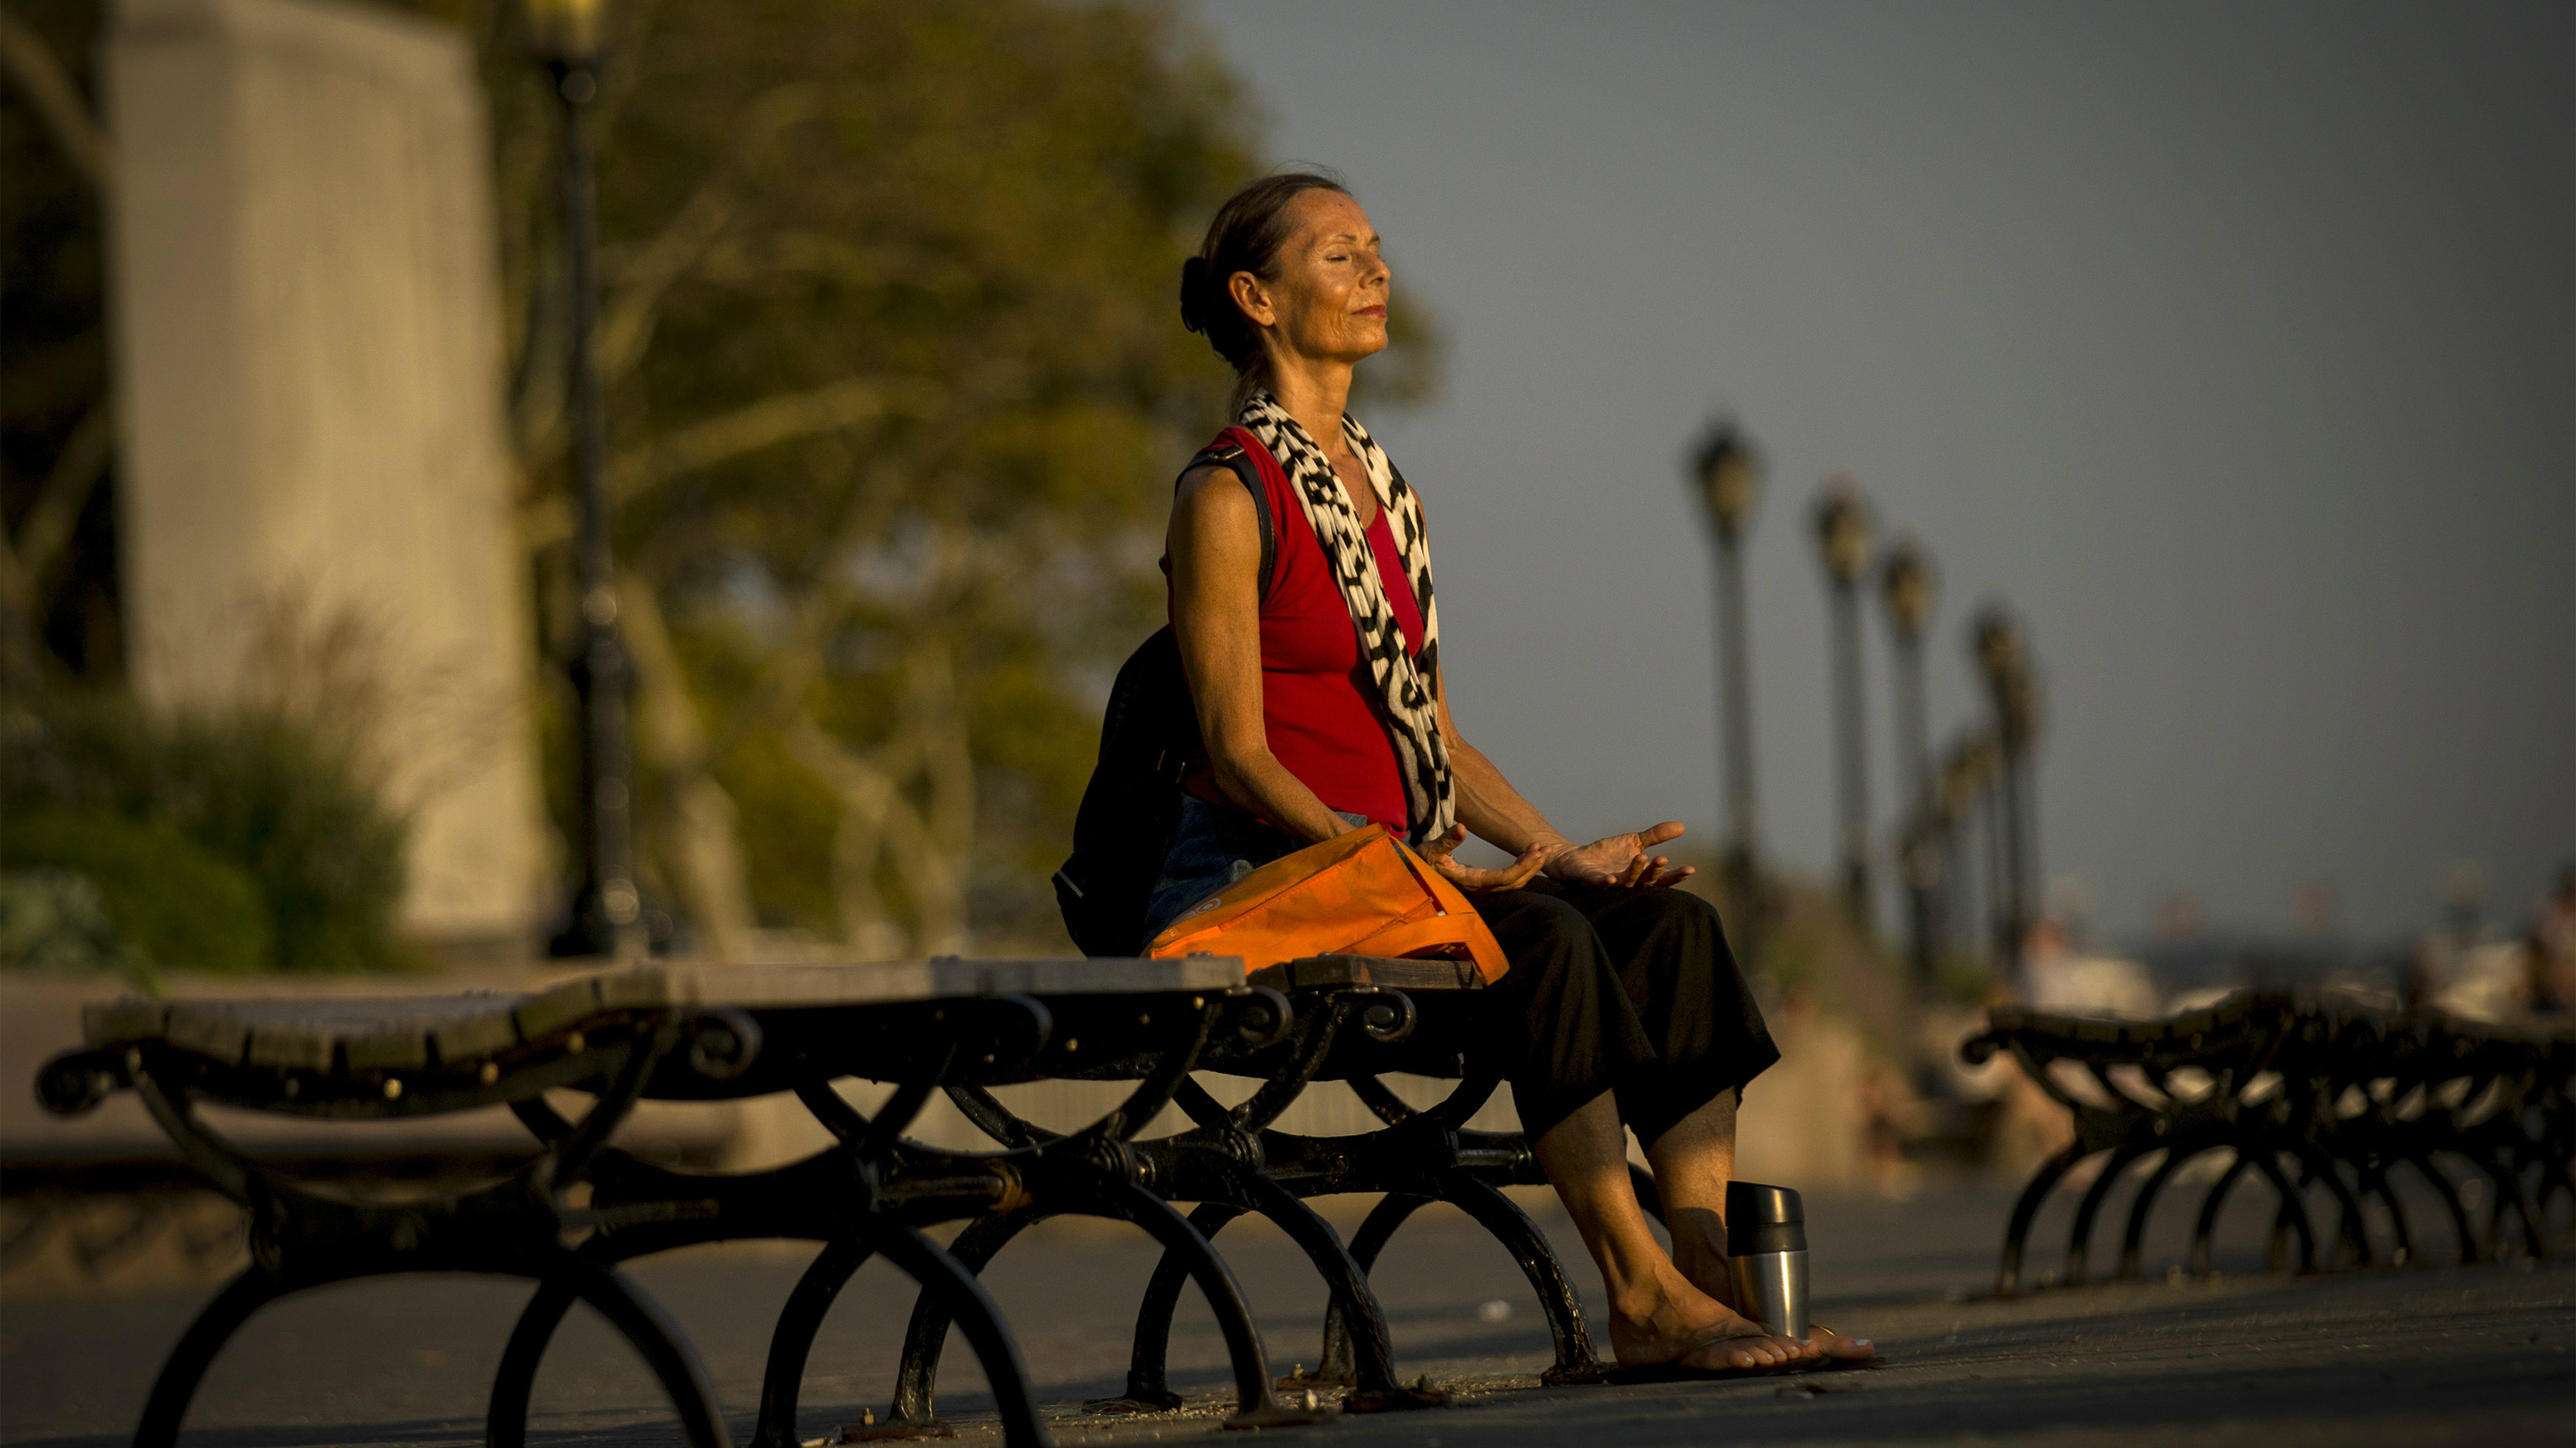 A woman takes in the sun just before sunset at the southern tip of Manhattan in New York's Battery Park, September 2, 2014. The temperature hit 92 degrees Fahrenheit (33 degree Celsius) in Central Park today for the first time in 2014.